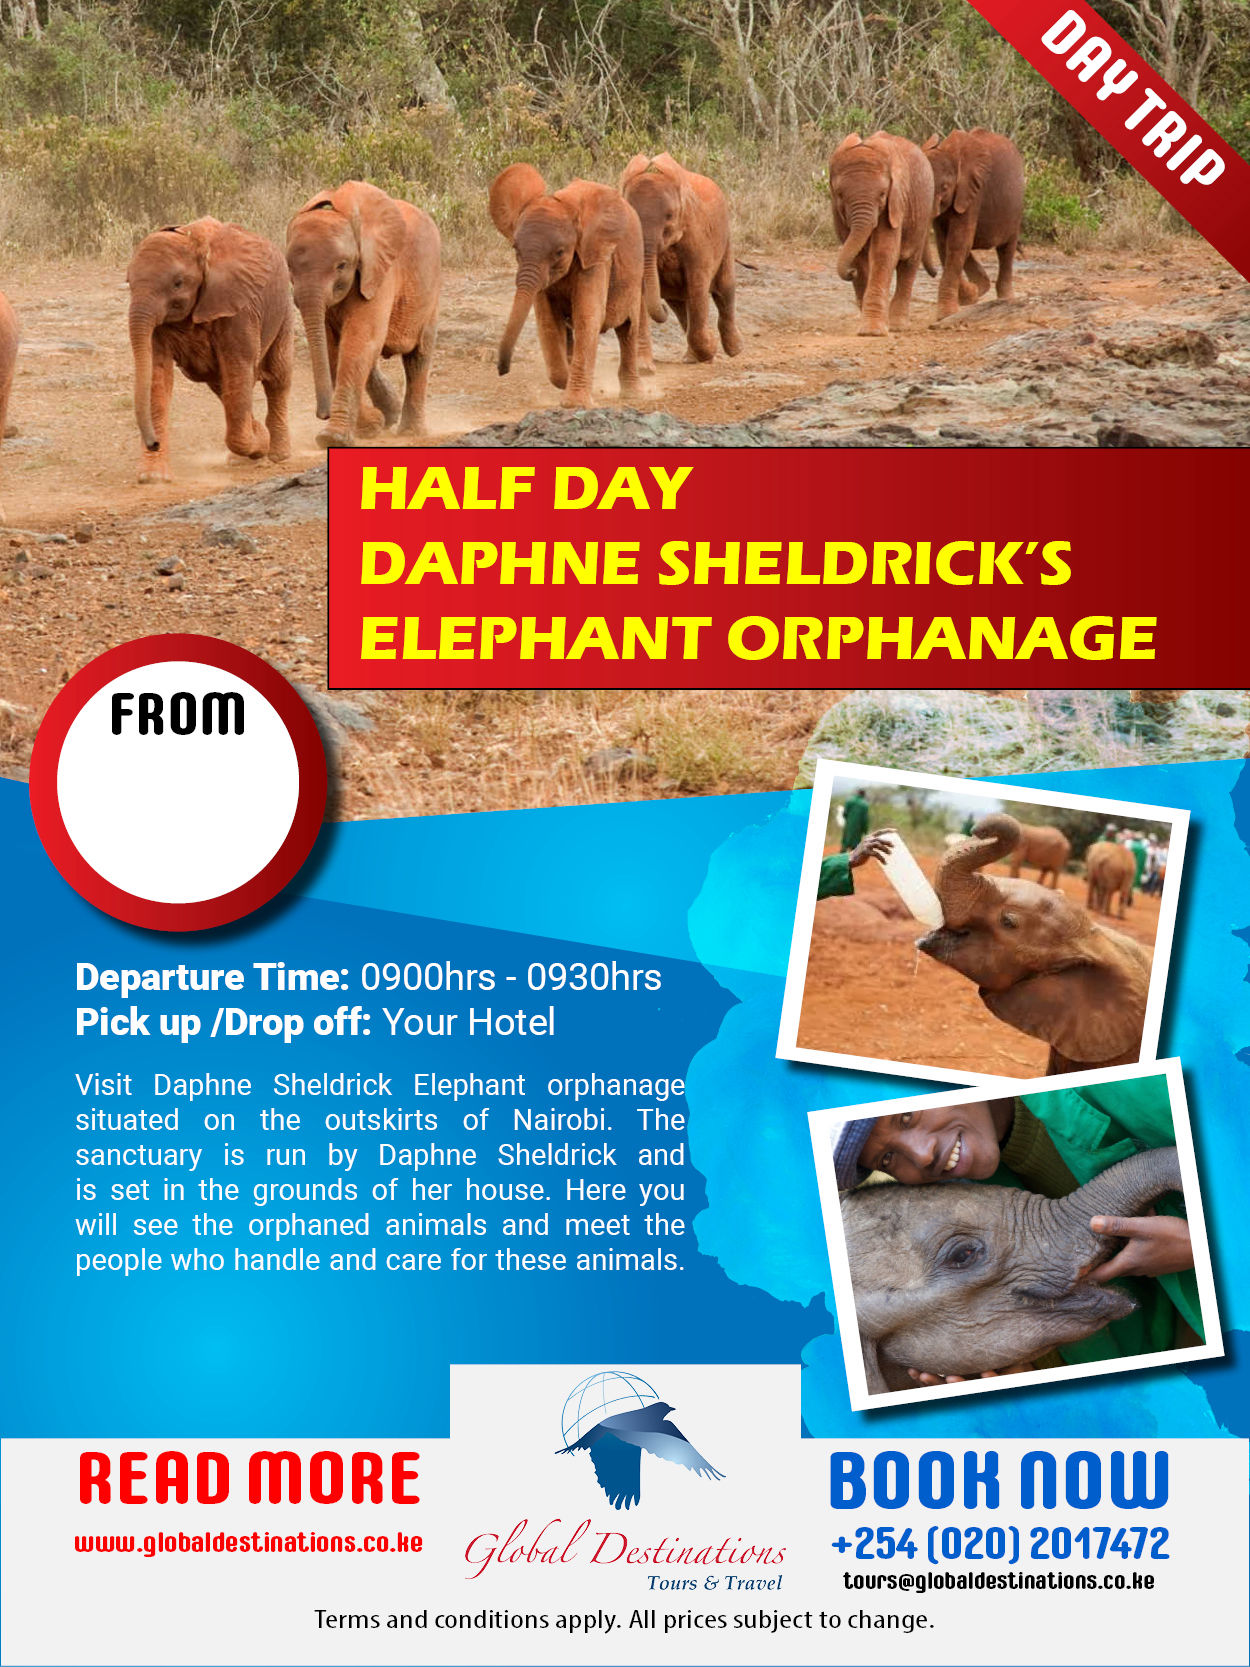 Half Day Daphne Sheldricks Elephant Orphanage